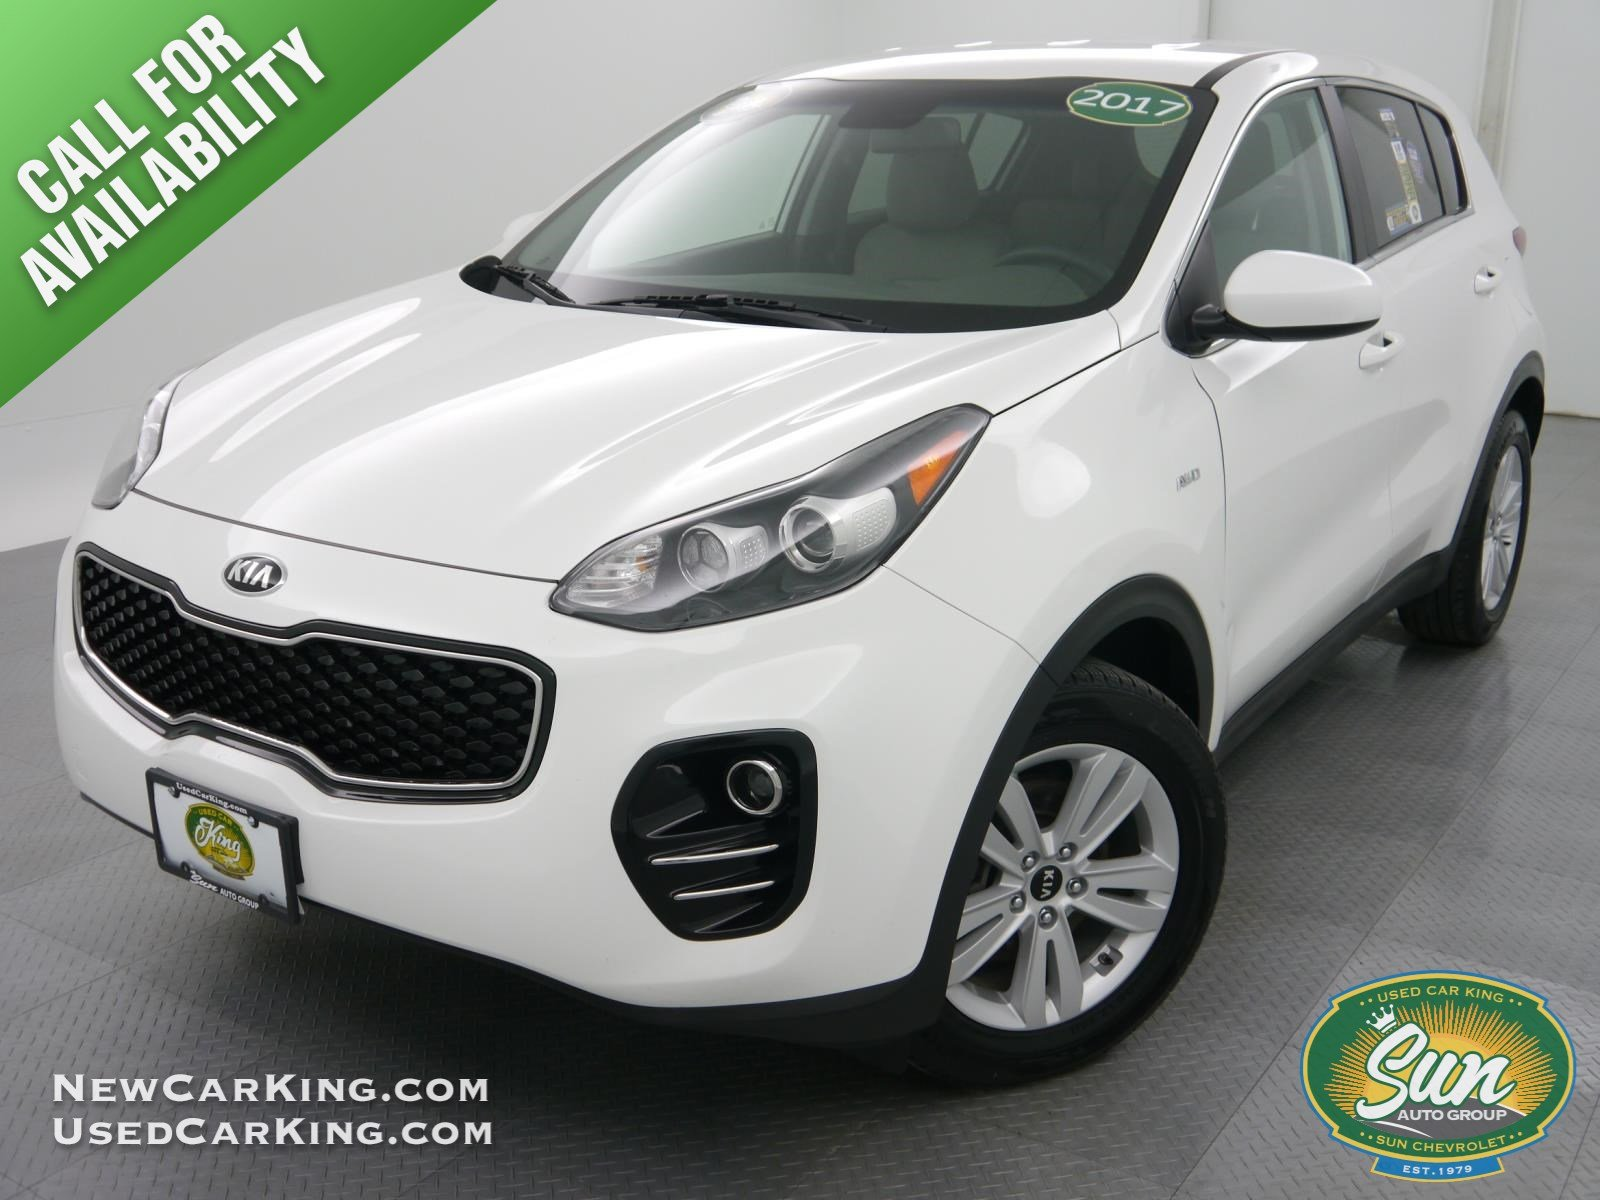 nampa awd suv inventory new the sport lx kendall vehicle utility kia in at sportage